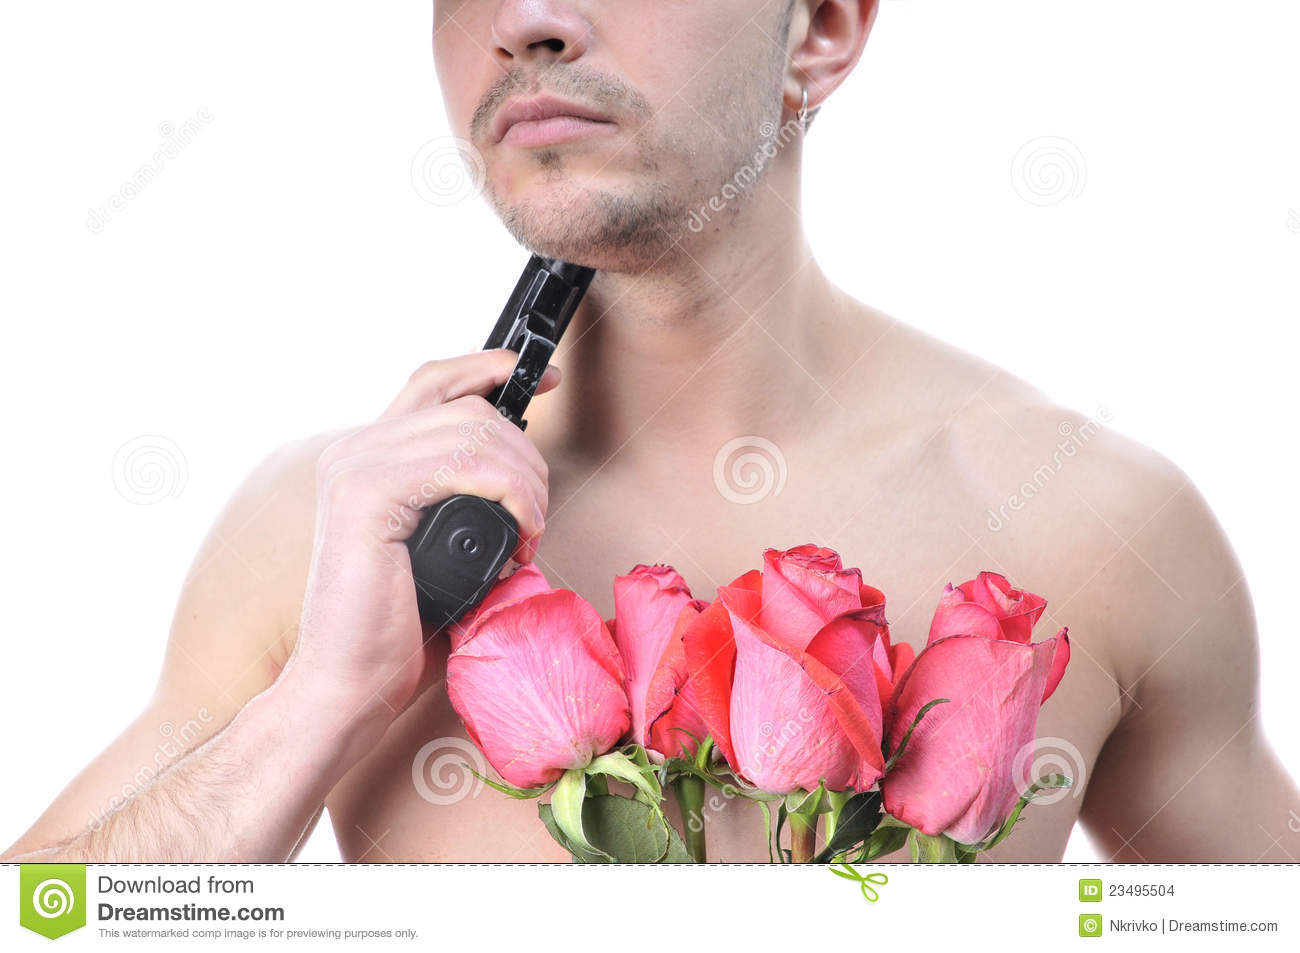 y Man With Gun And Flowers Stock Image